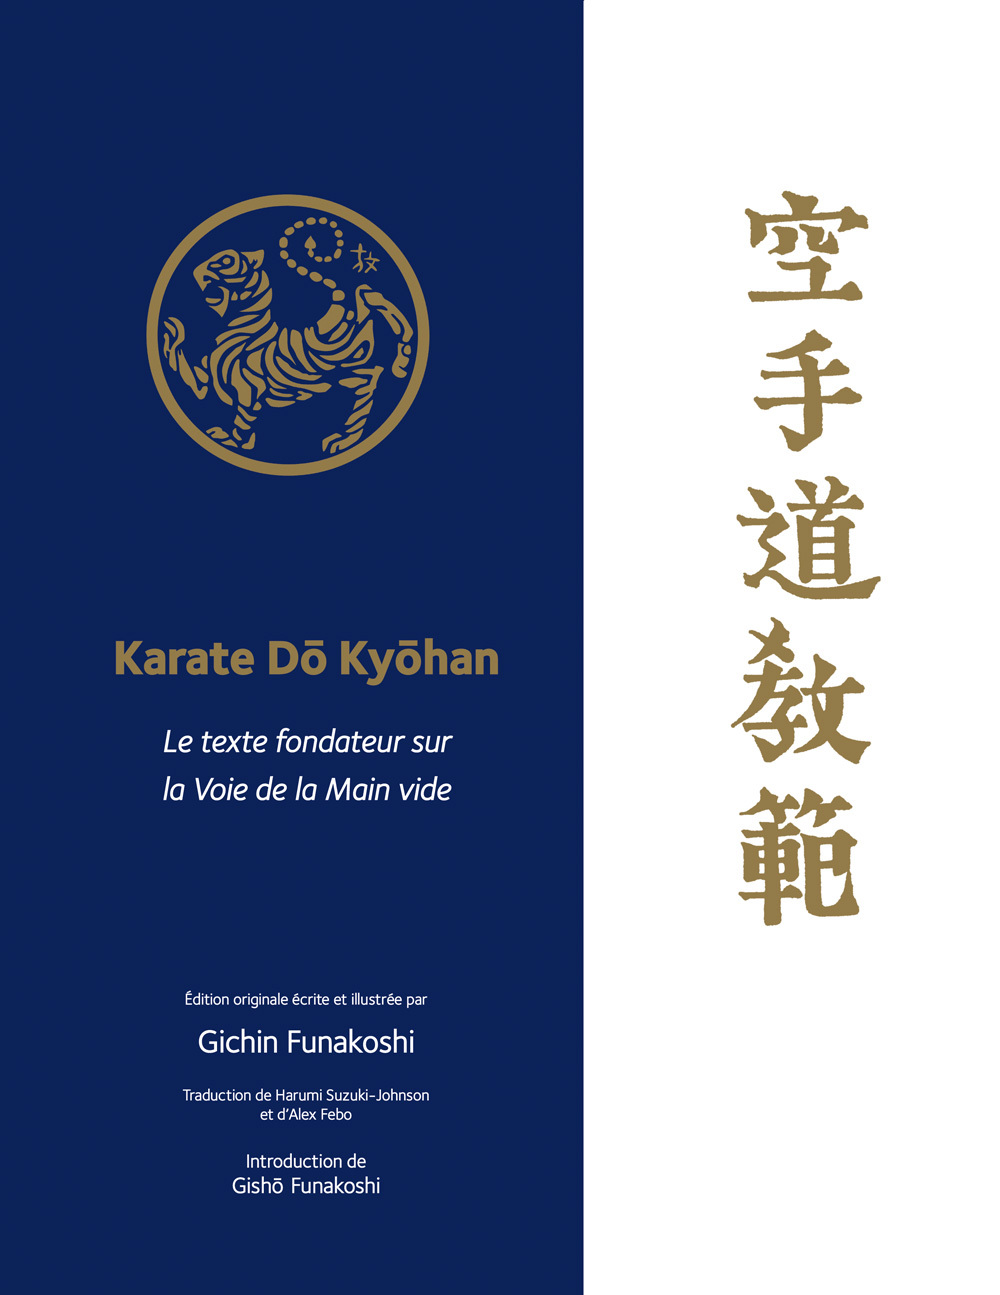 KARATE DO KYOHAN